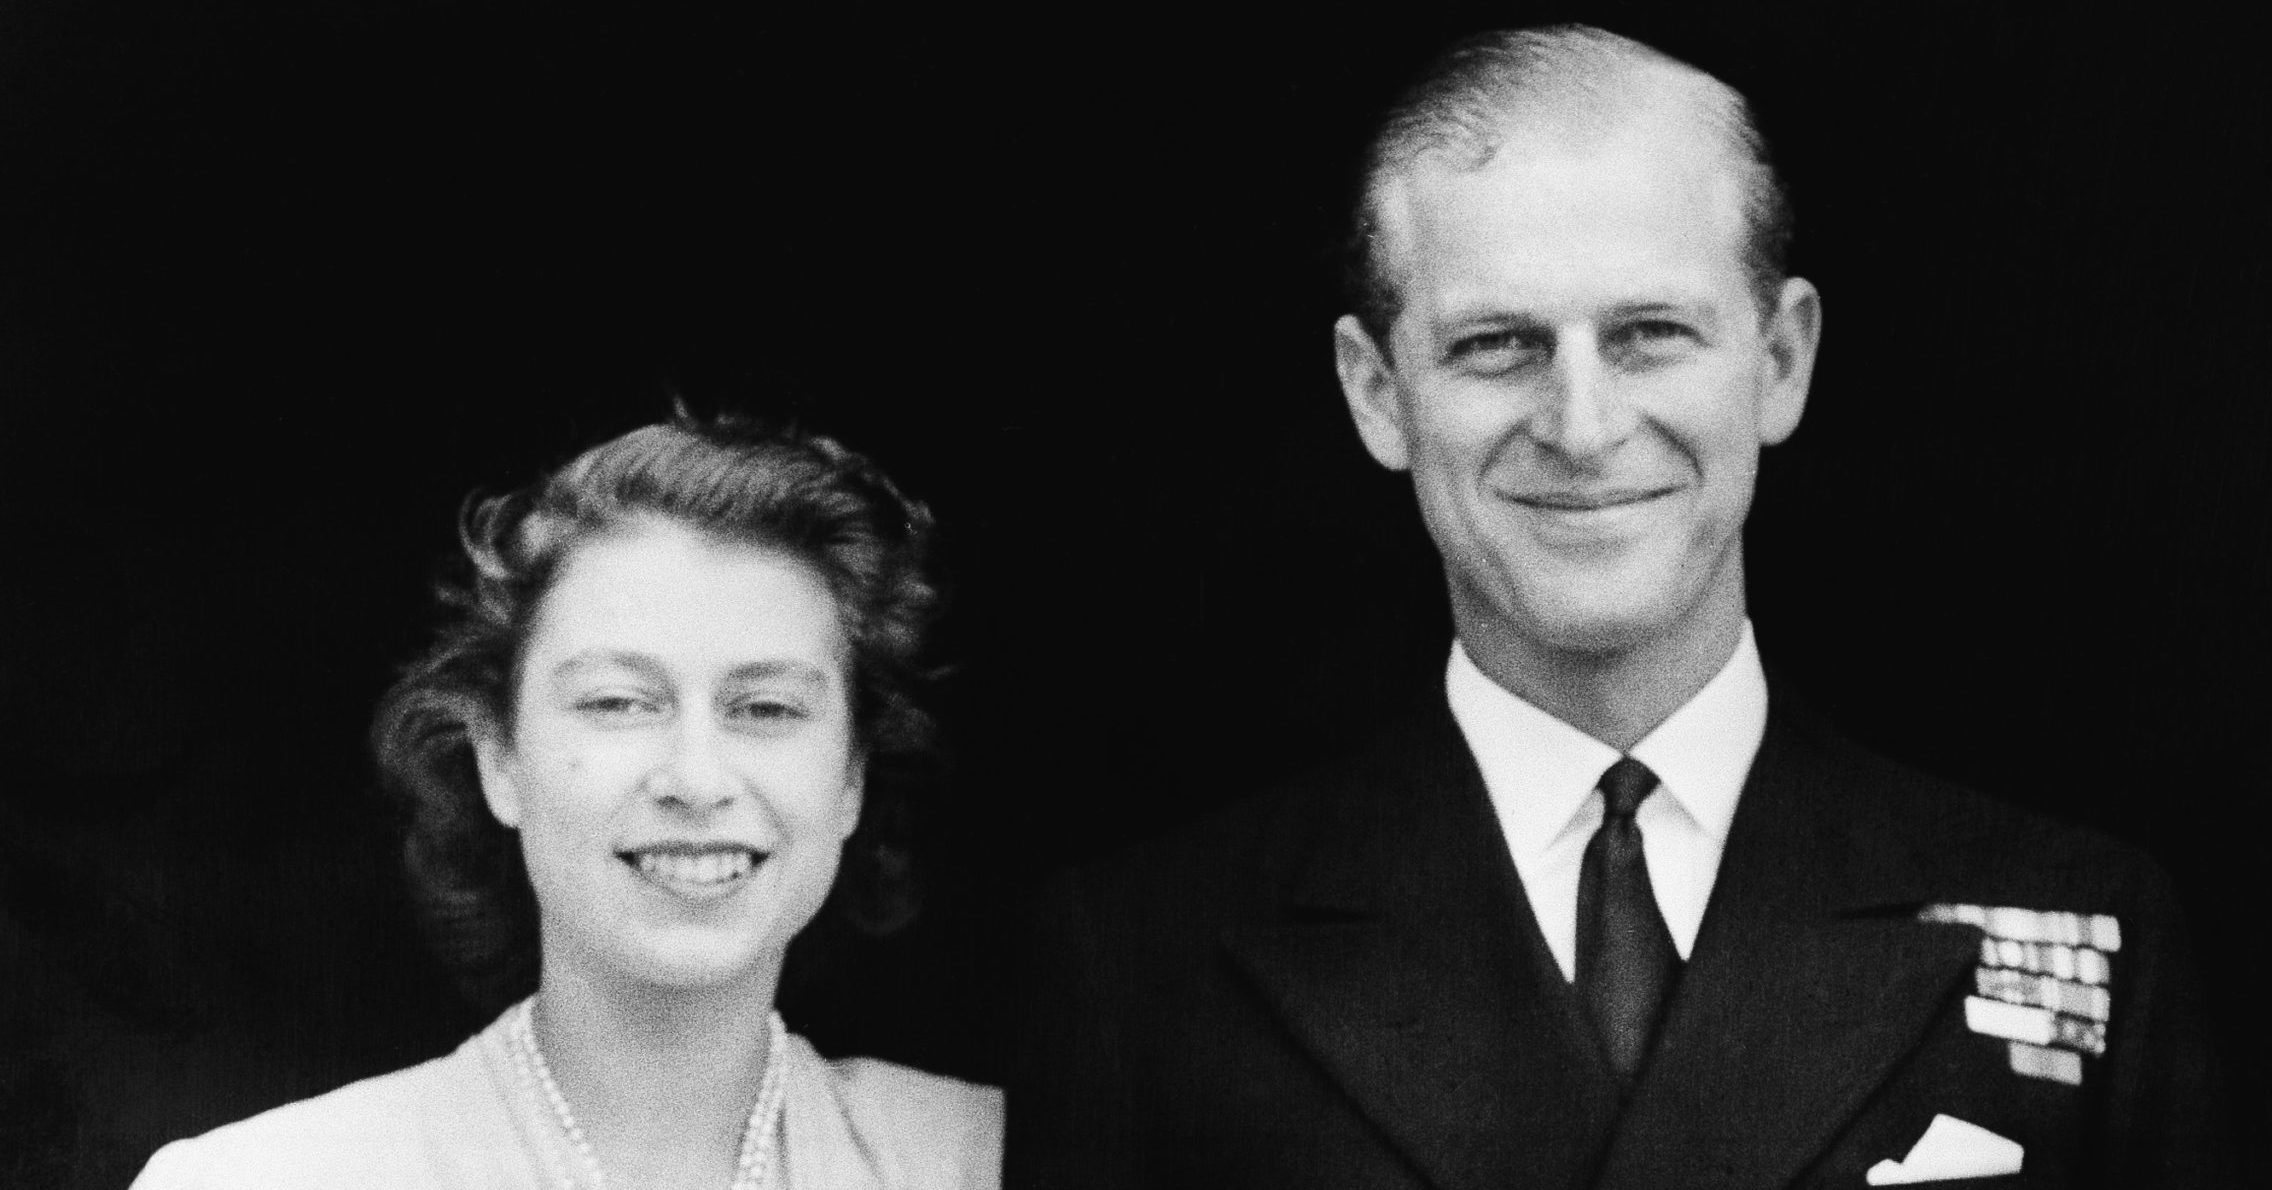 Britain's Princess Elizabeth and her fiance, Lt. Philip Mountbatten, are seen in London on July 10, 1947.